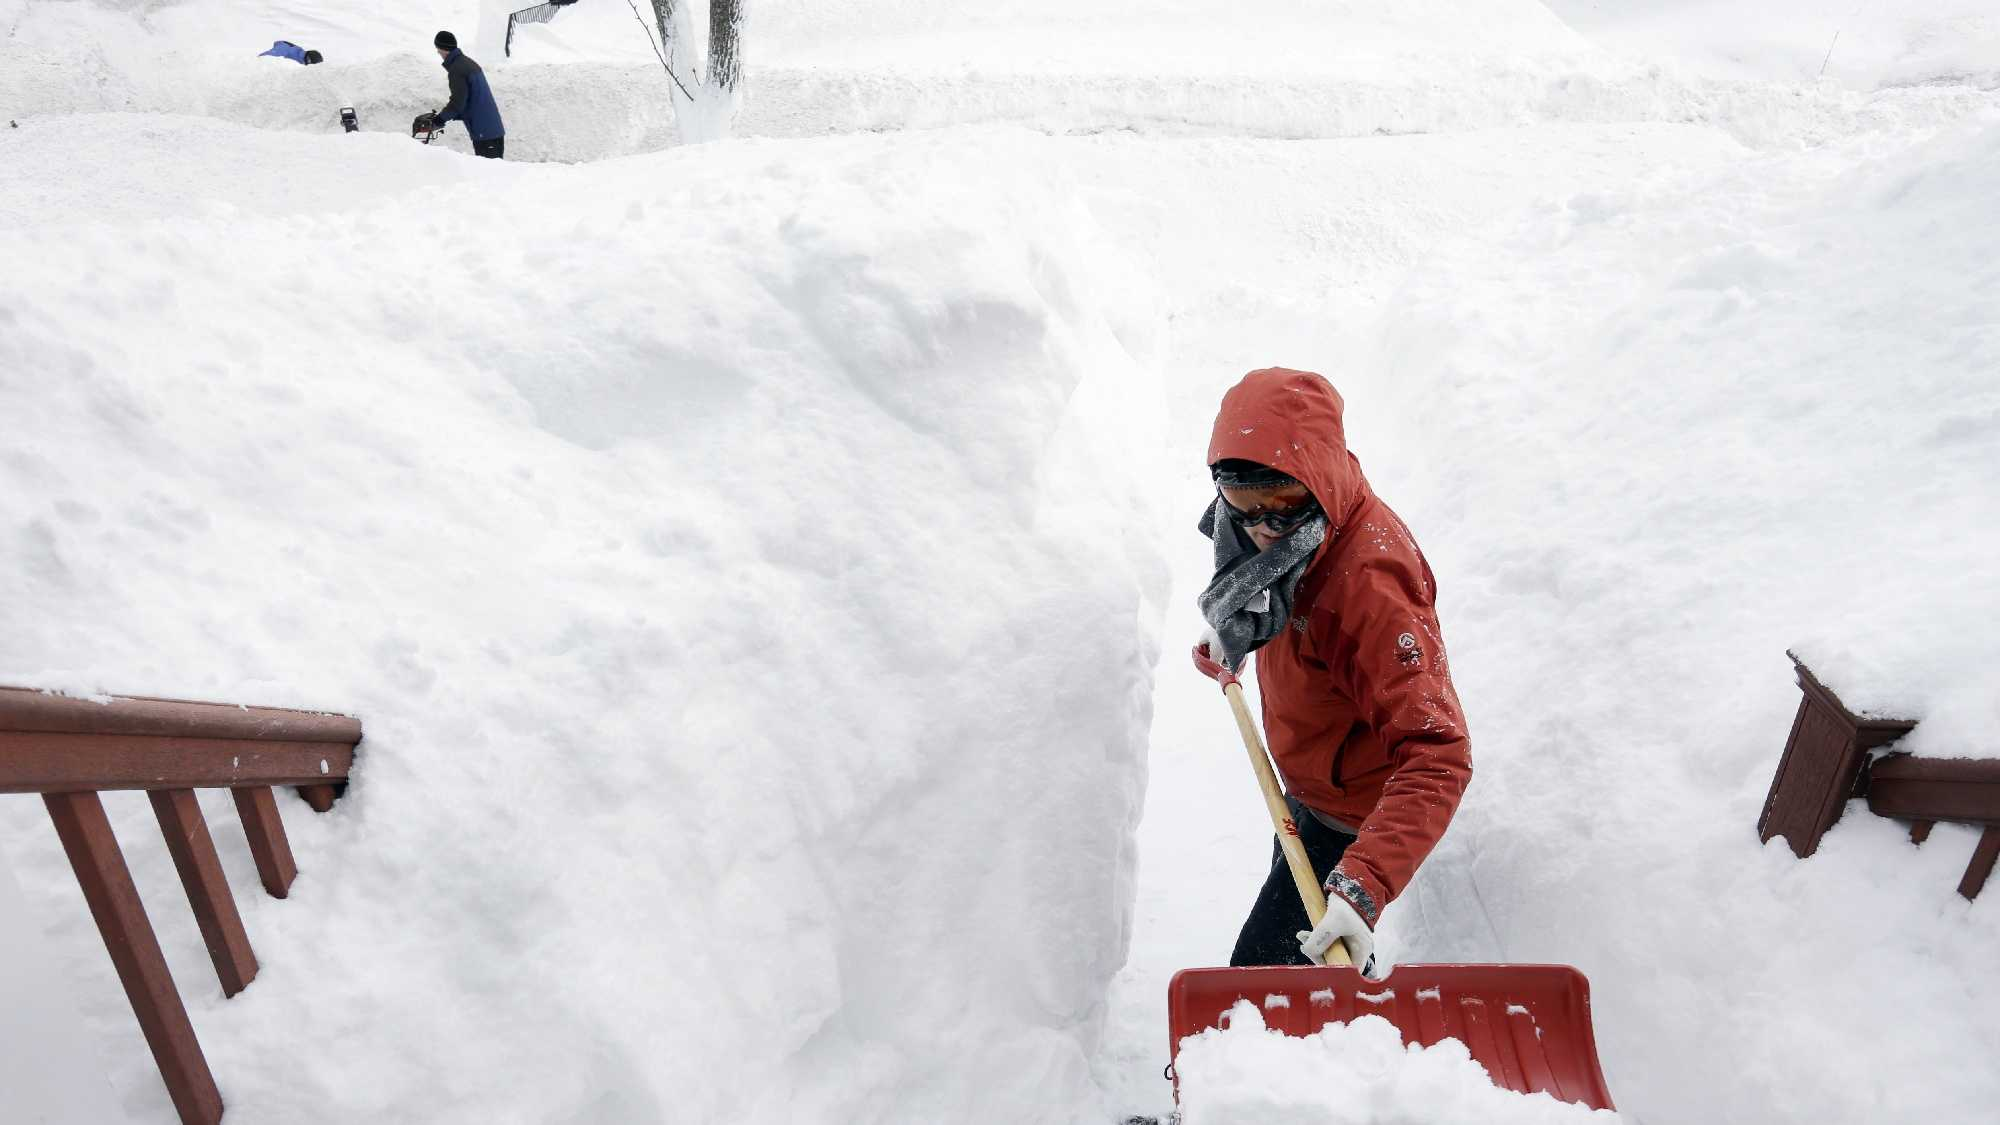 Kim Taylor, of Norwood, Mass., right, shovels a path in the snow in front of her home Sunday, Feb. 15, 2015, in Norwood. A storm brought a new round of wind-whipped snow to New England on Sunday, threatening white-out conditions in coastal areas and forcing people to contend with a fourth winter onslaught in less than a month.